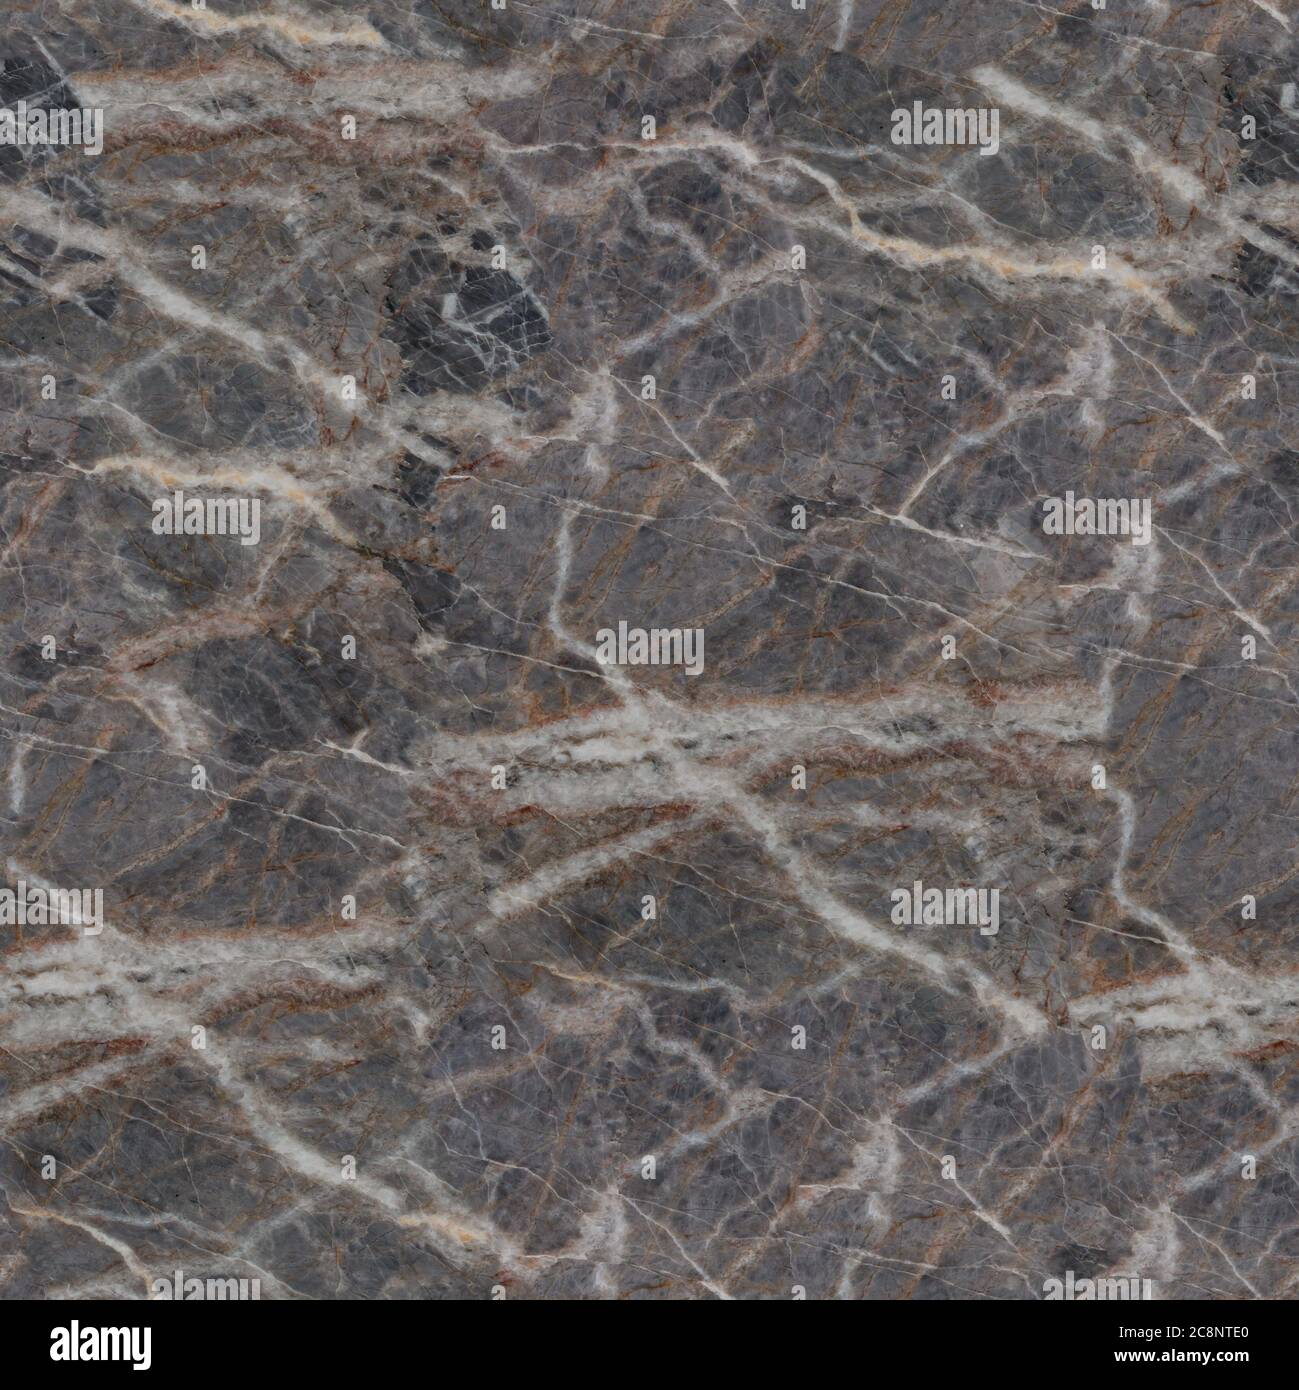 Close Up Of Patterned Structure Of Dark Gray Marble Pattern For Design And Texture Seamless Square Background Stock Photo Alamy